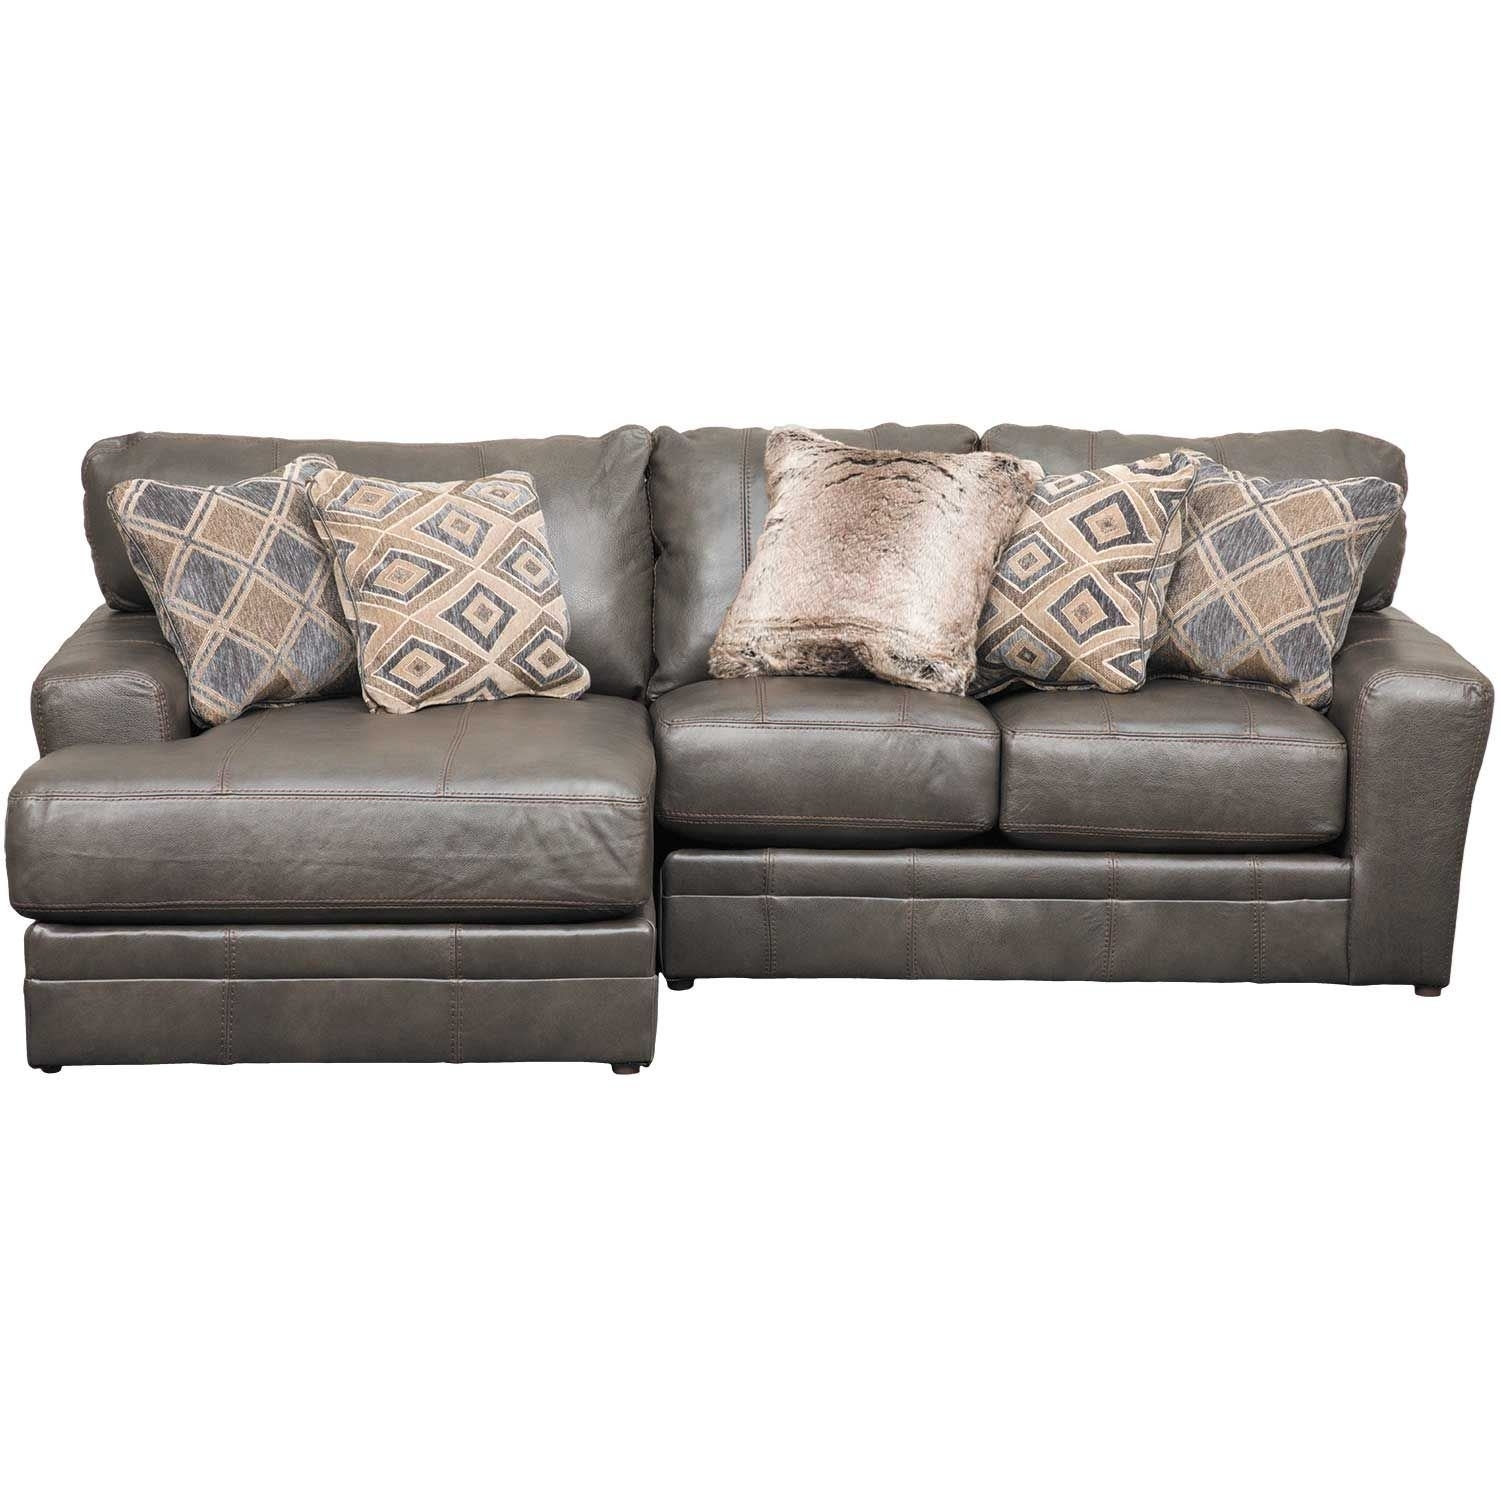 Denali 2 Piece Italian Leather Sectional With Laf Chaise | 4378 75 Inside Cosmos Grey 2 Piece Sectionals With Laf Chaise (View 14 of 25)